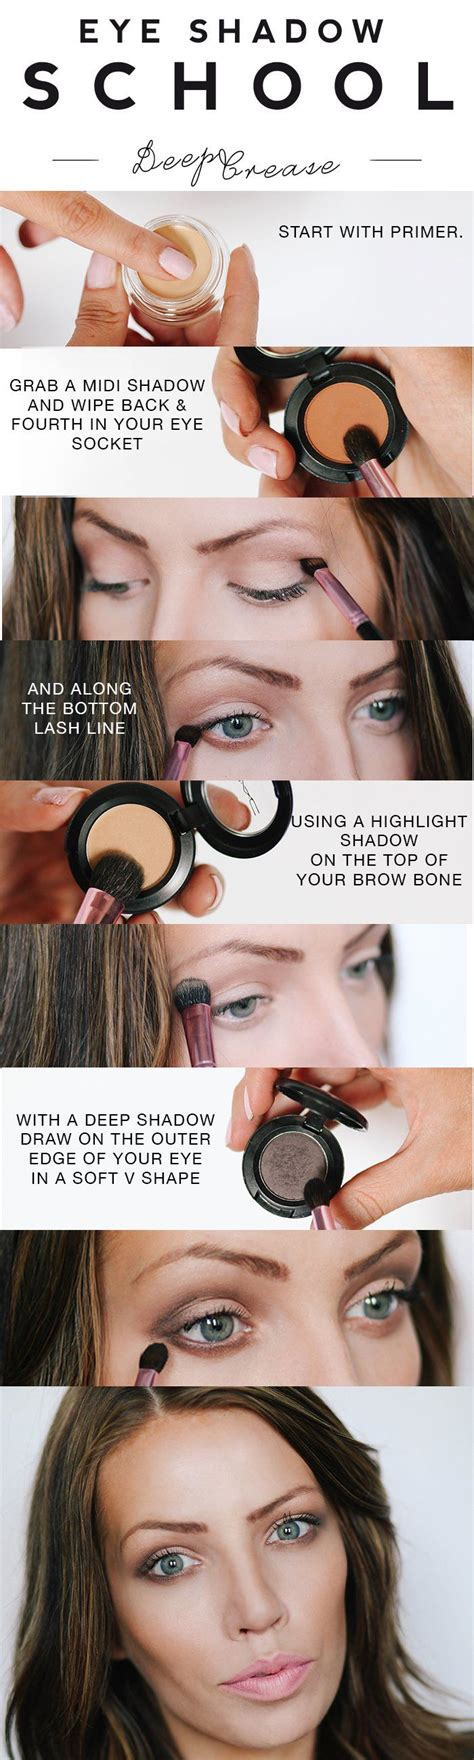 tutorial lipstik simpel eye shadow school deep crease eyeshadow make up pinterest